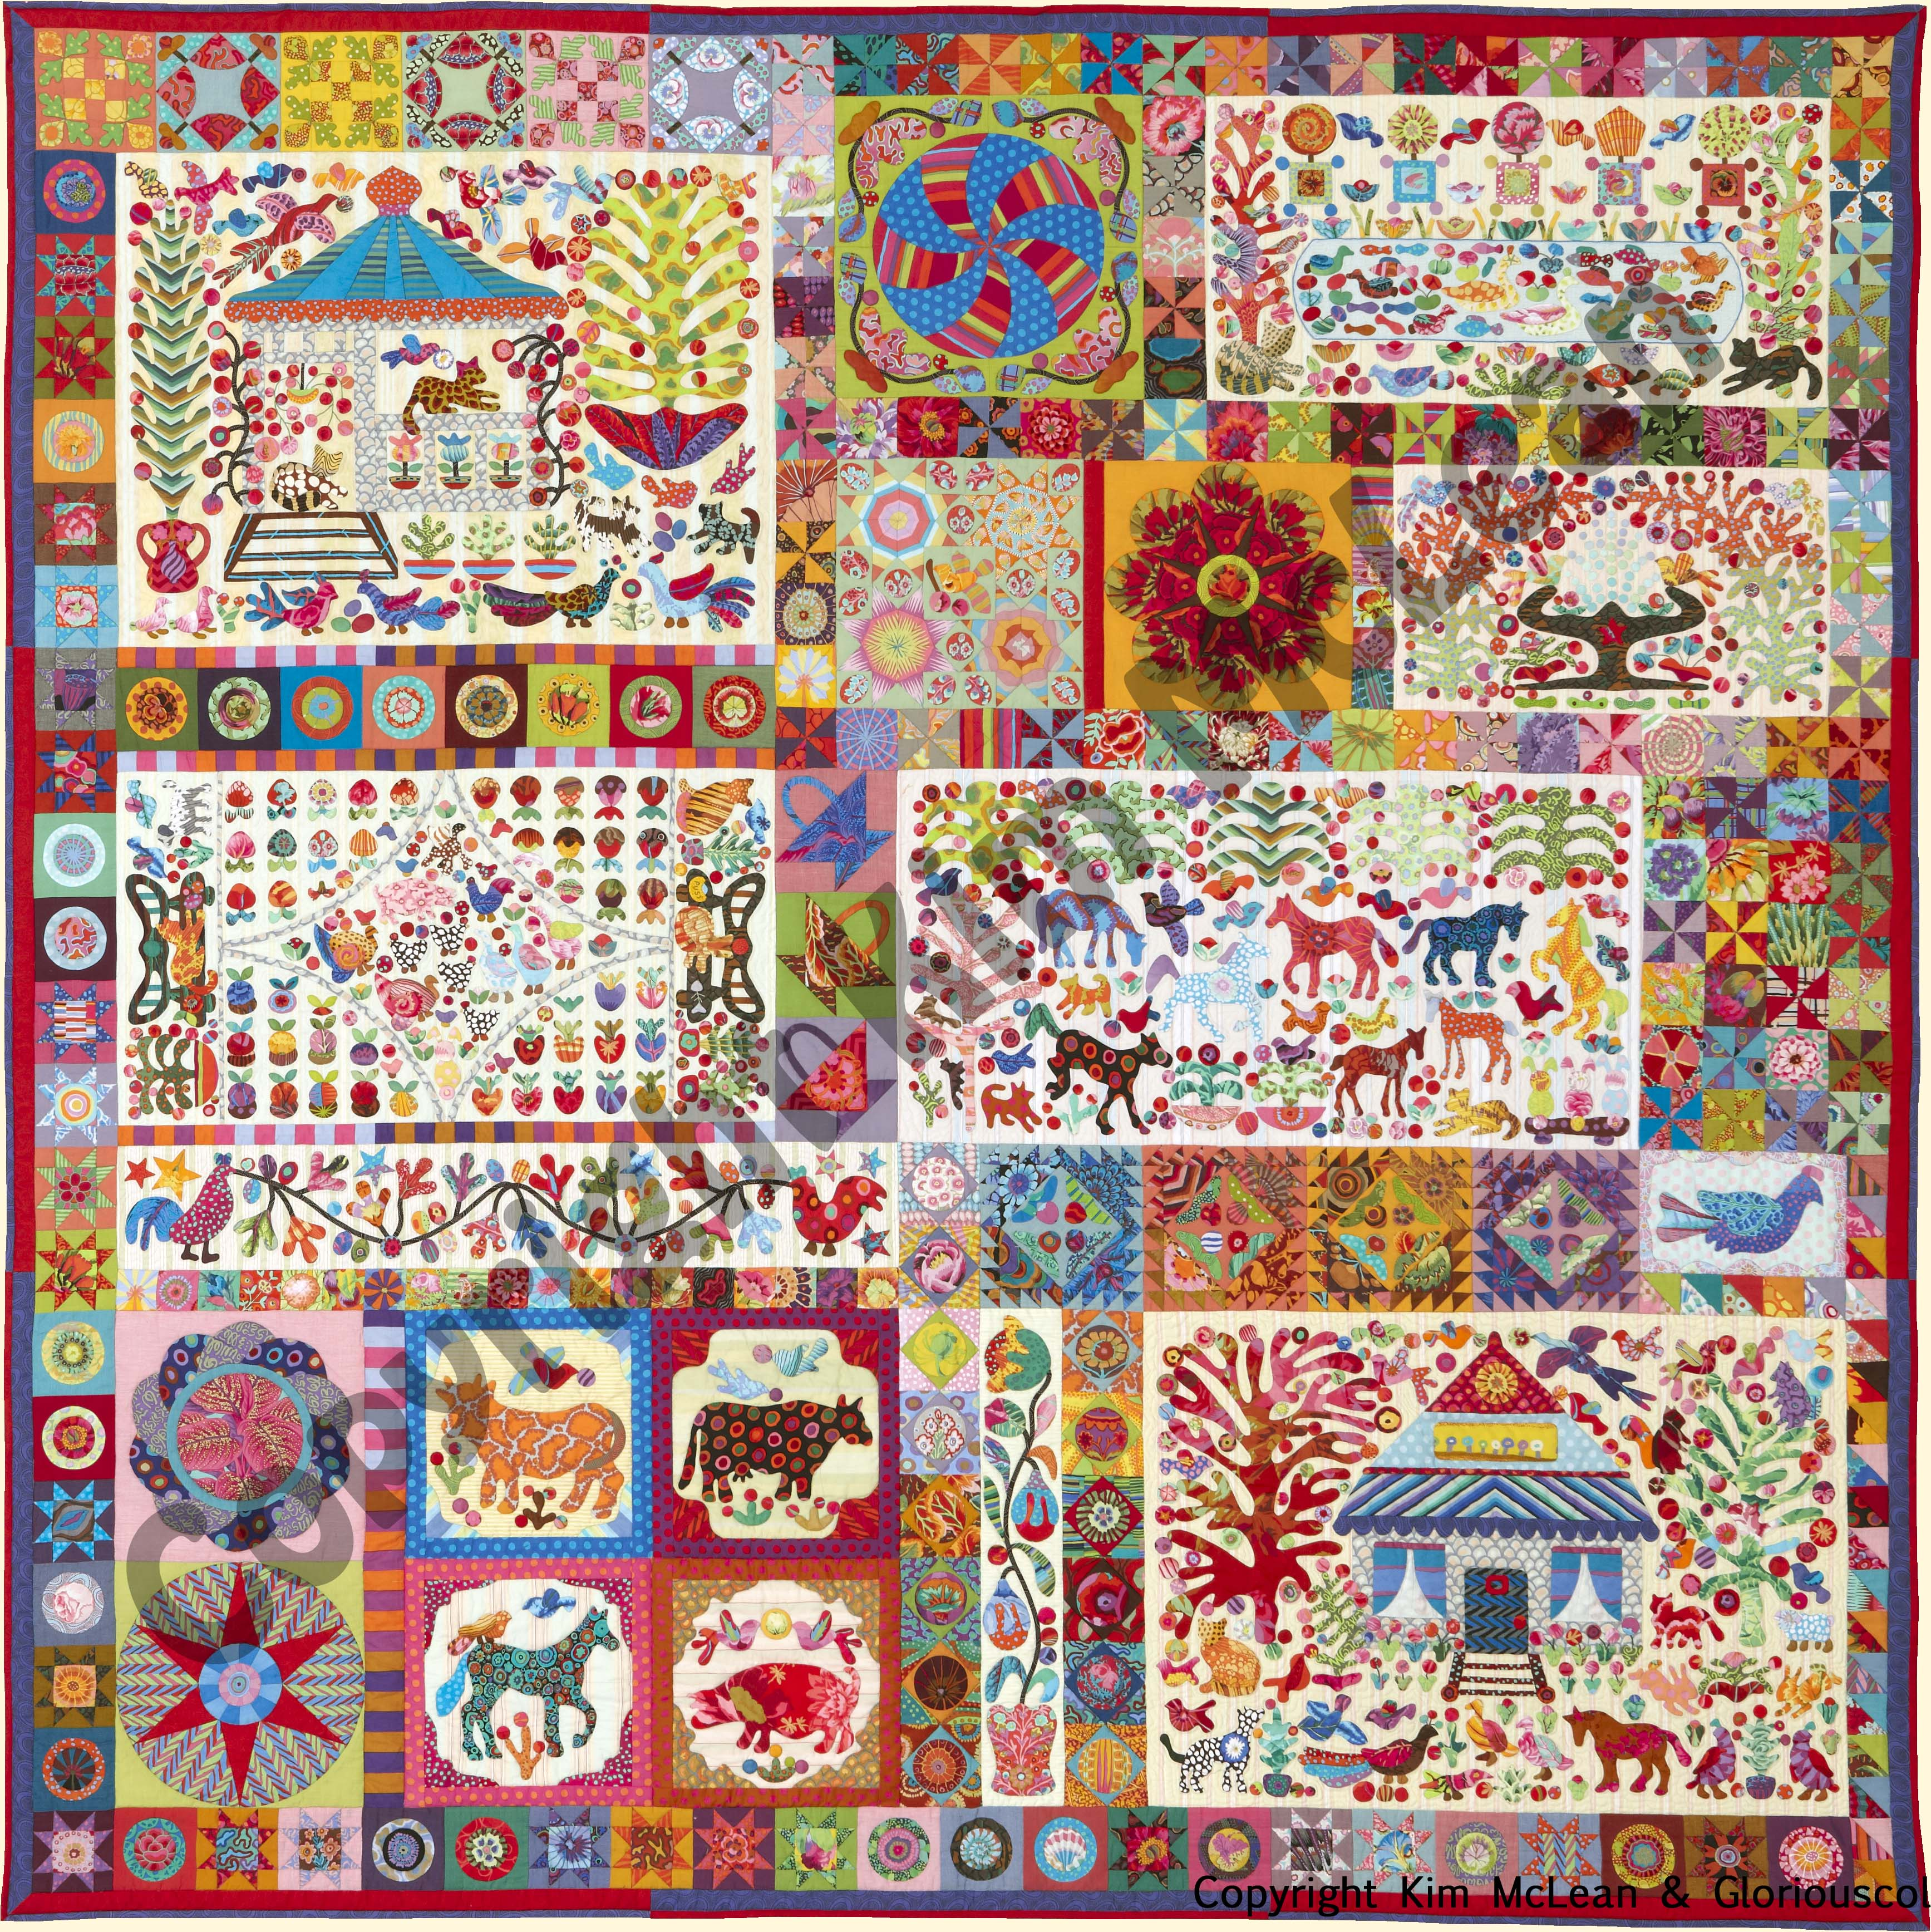 Pandemonium from Glorious Color. Kaffe Fassett Collective ...